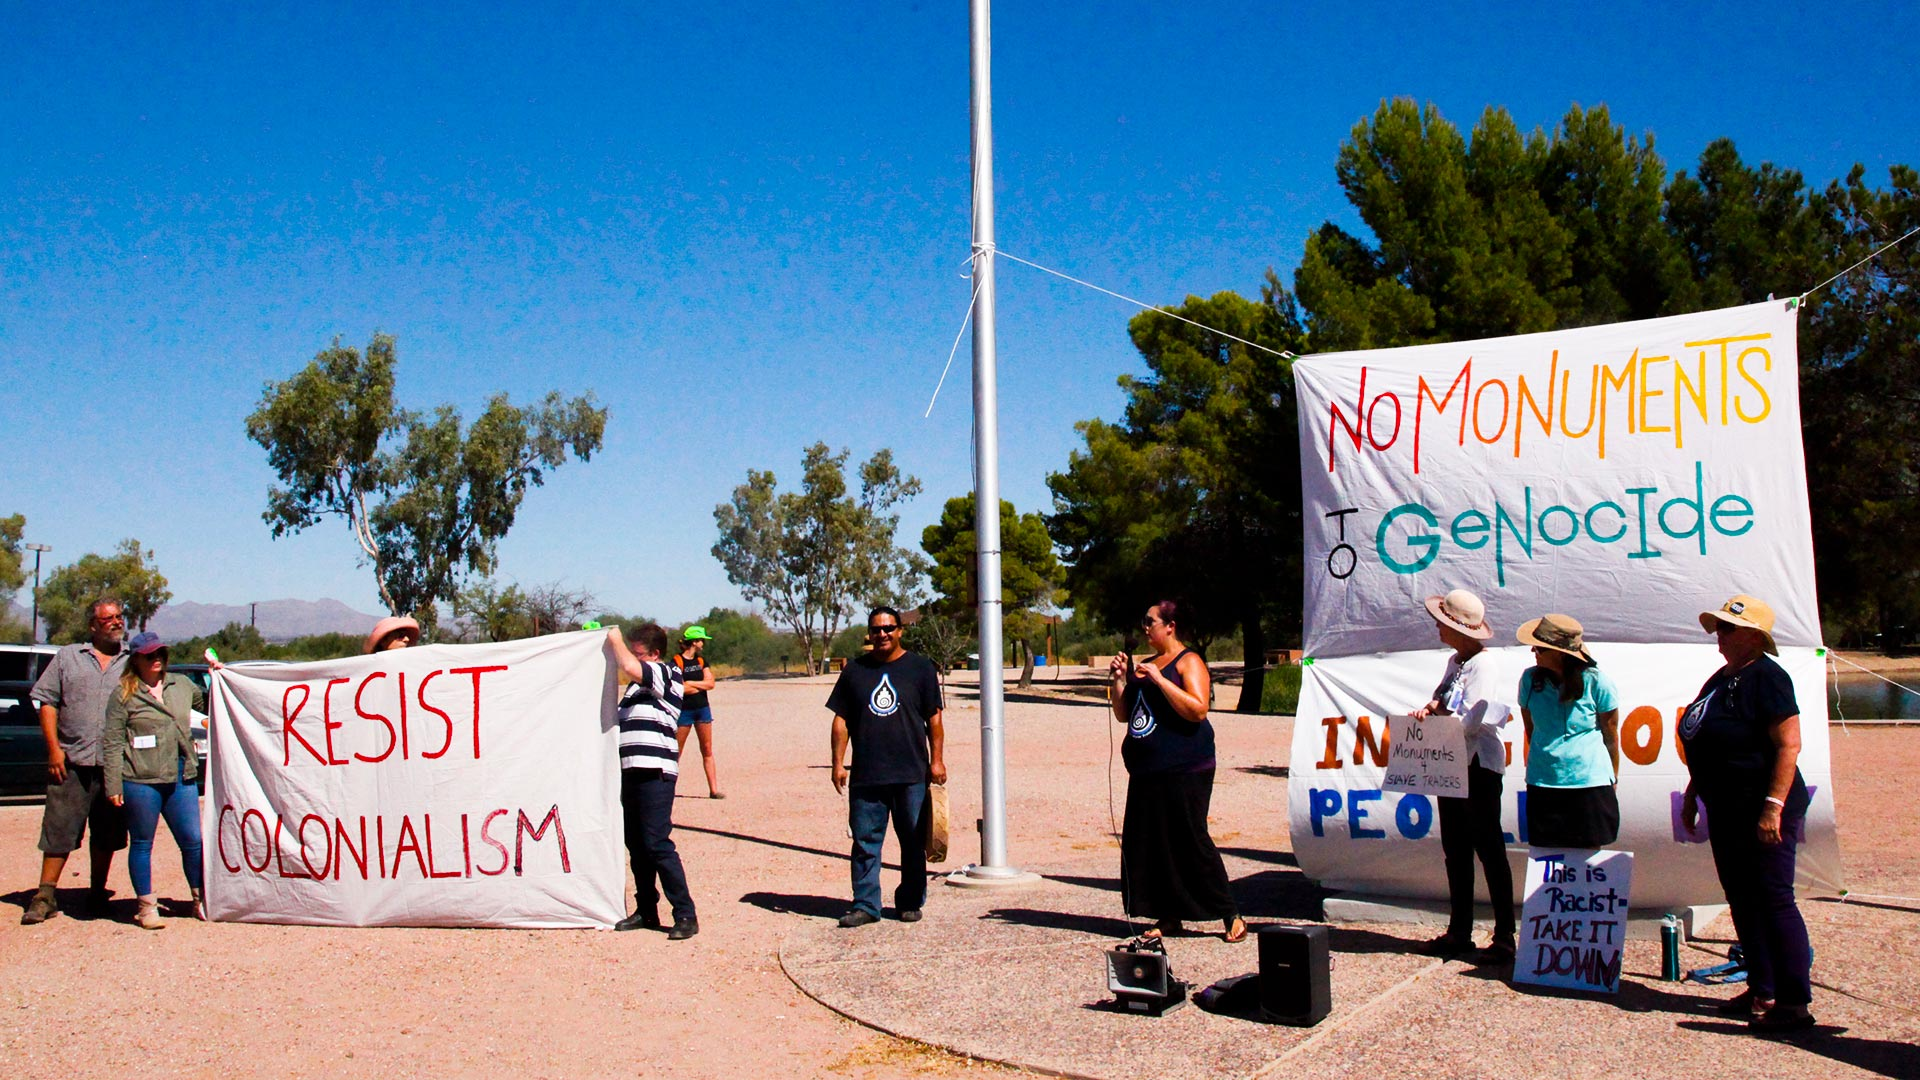 Groups gathered in Tucson's Christopher Columbus Park Oct. 8, 2017, to demand the city change the name.